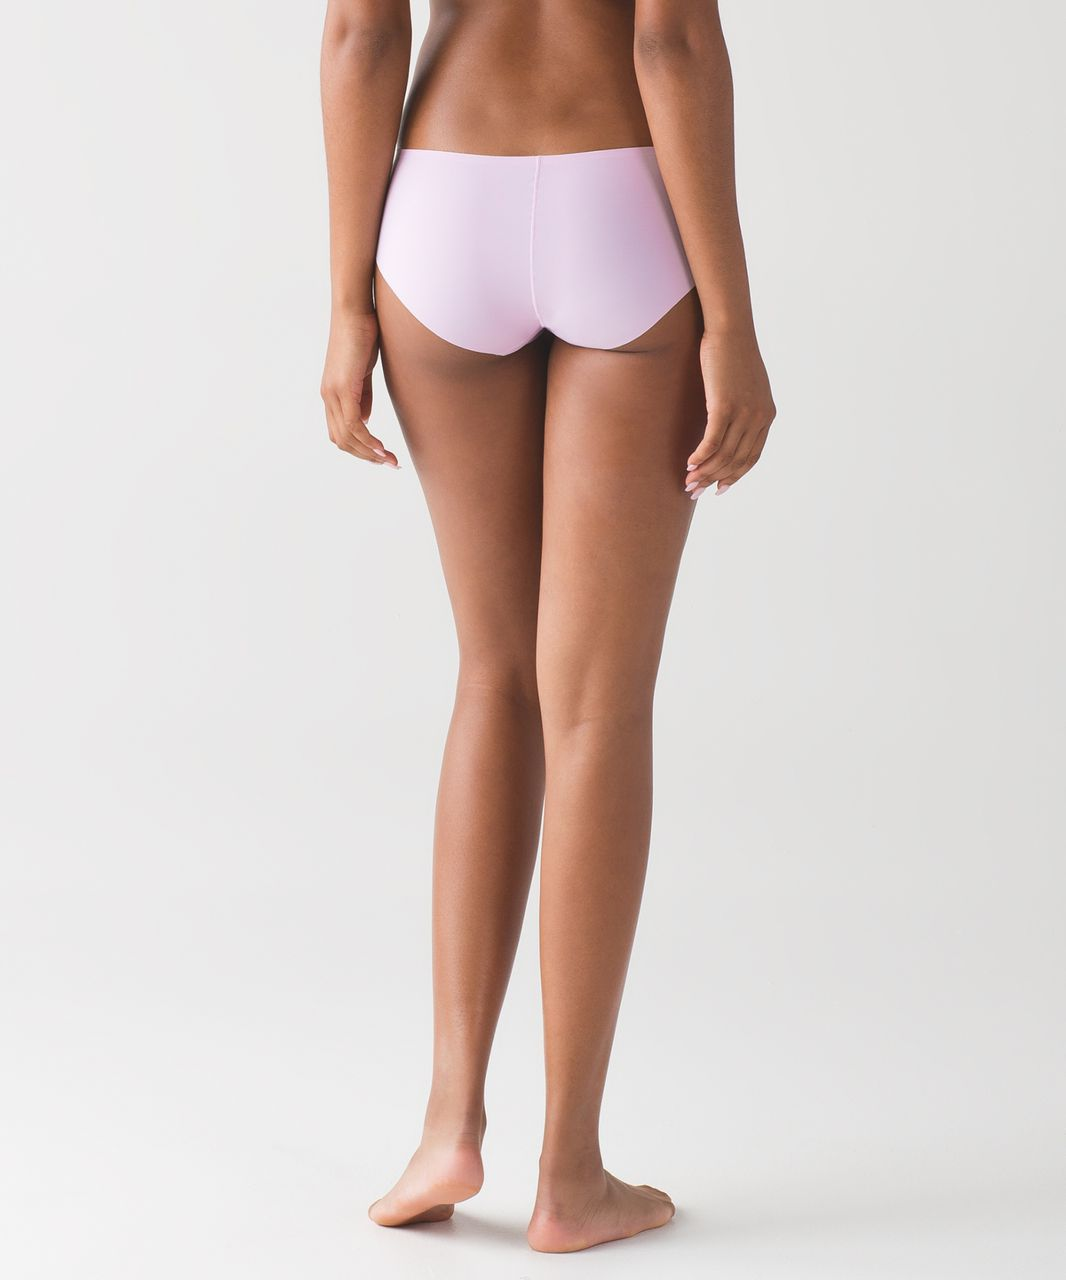 Lululemon Namastay Put Hipster - Rose Quartz